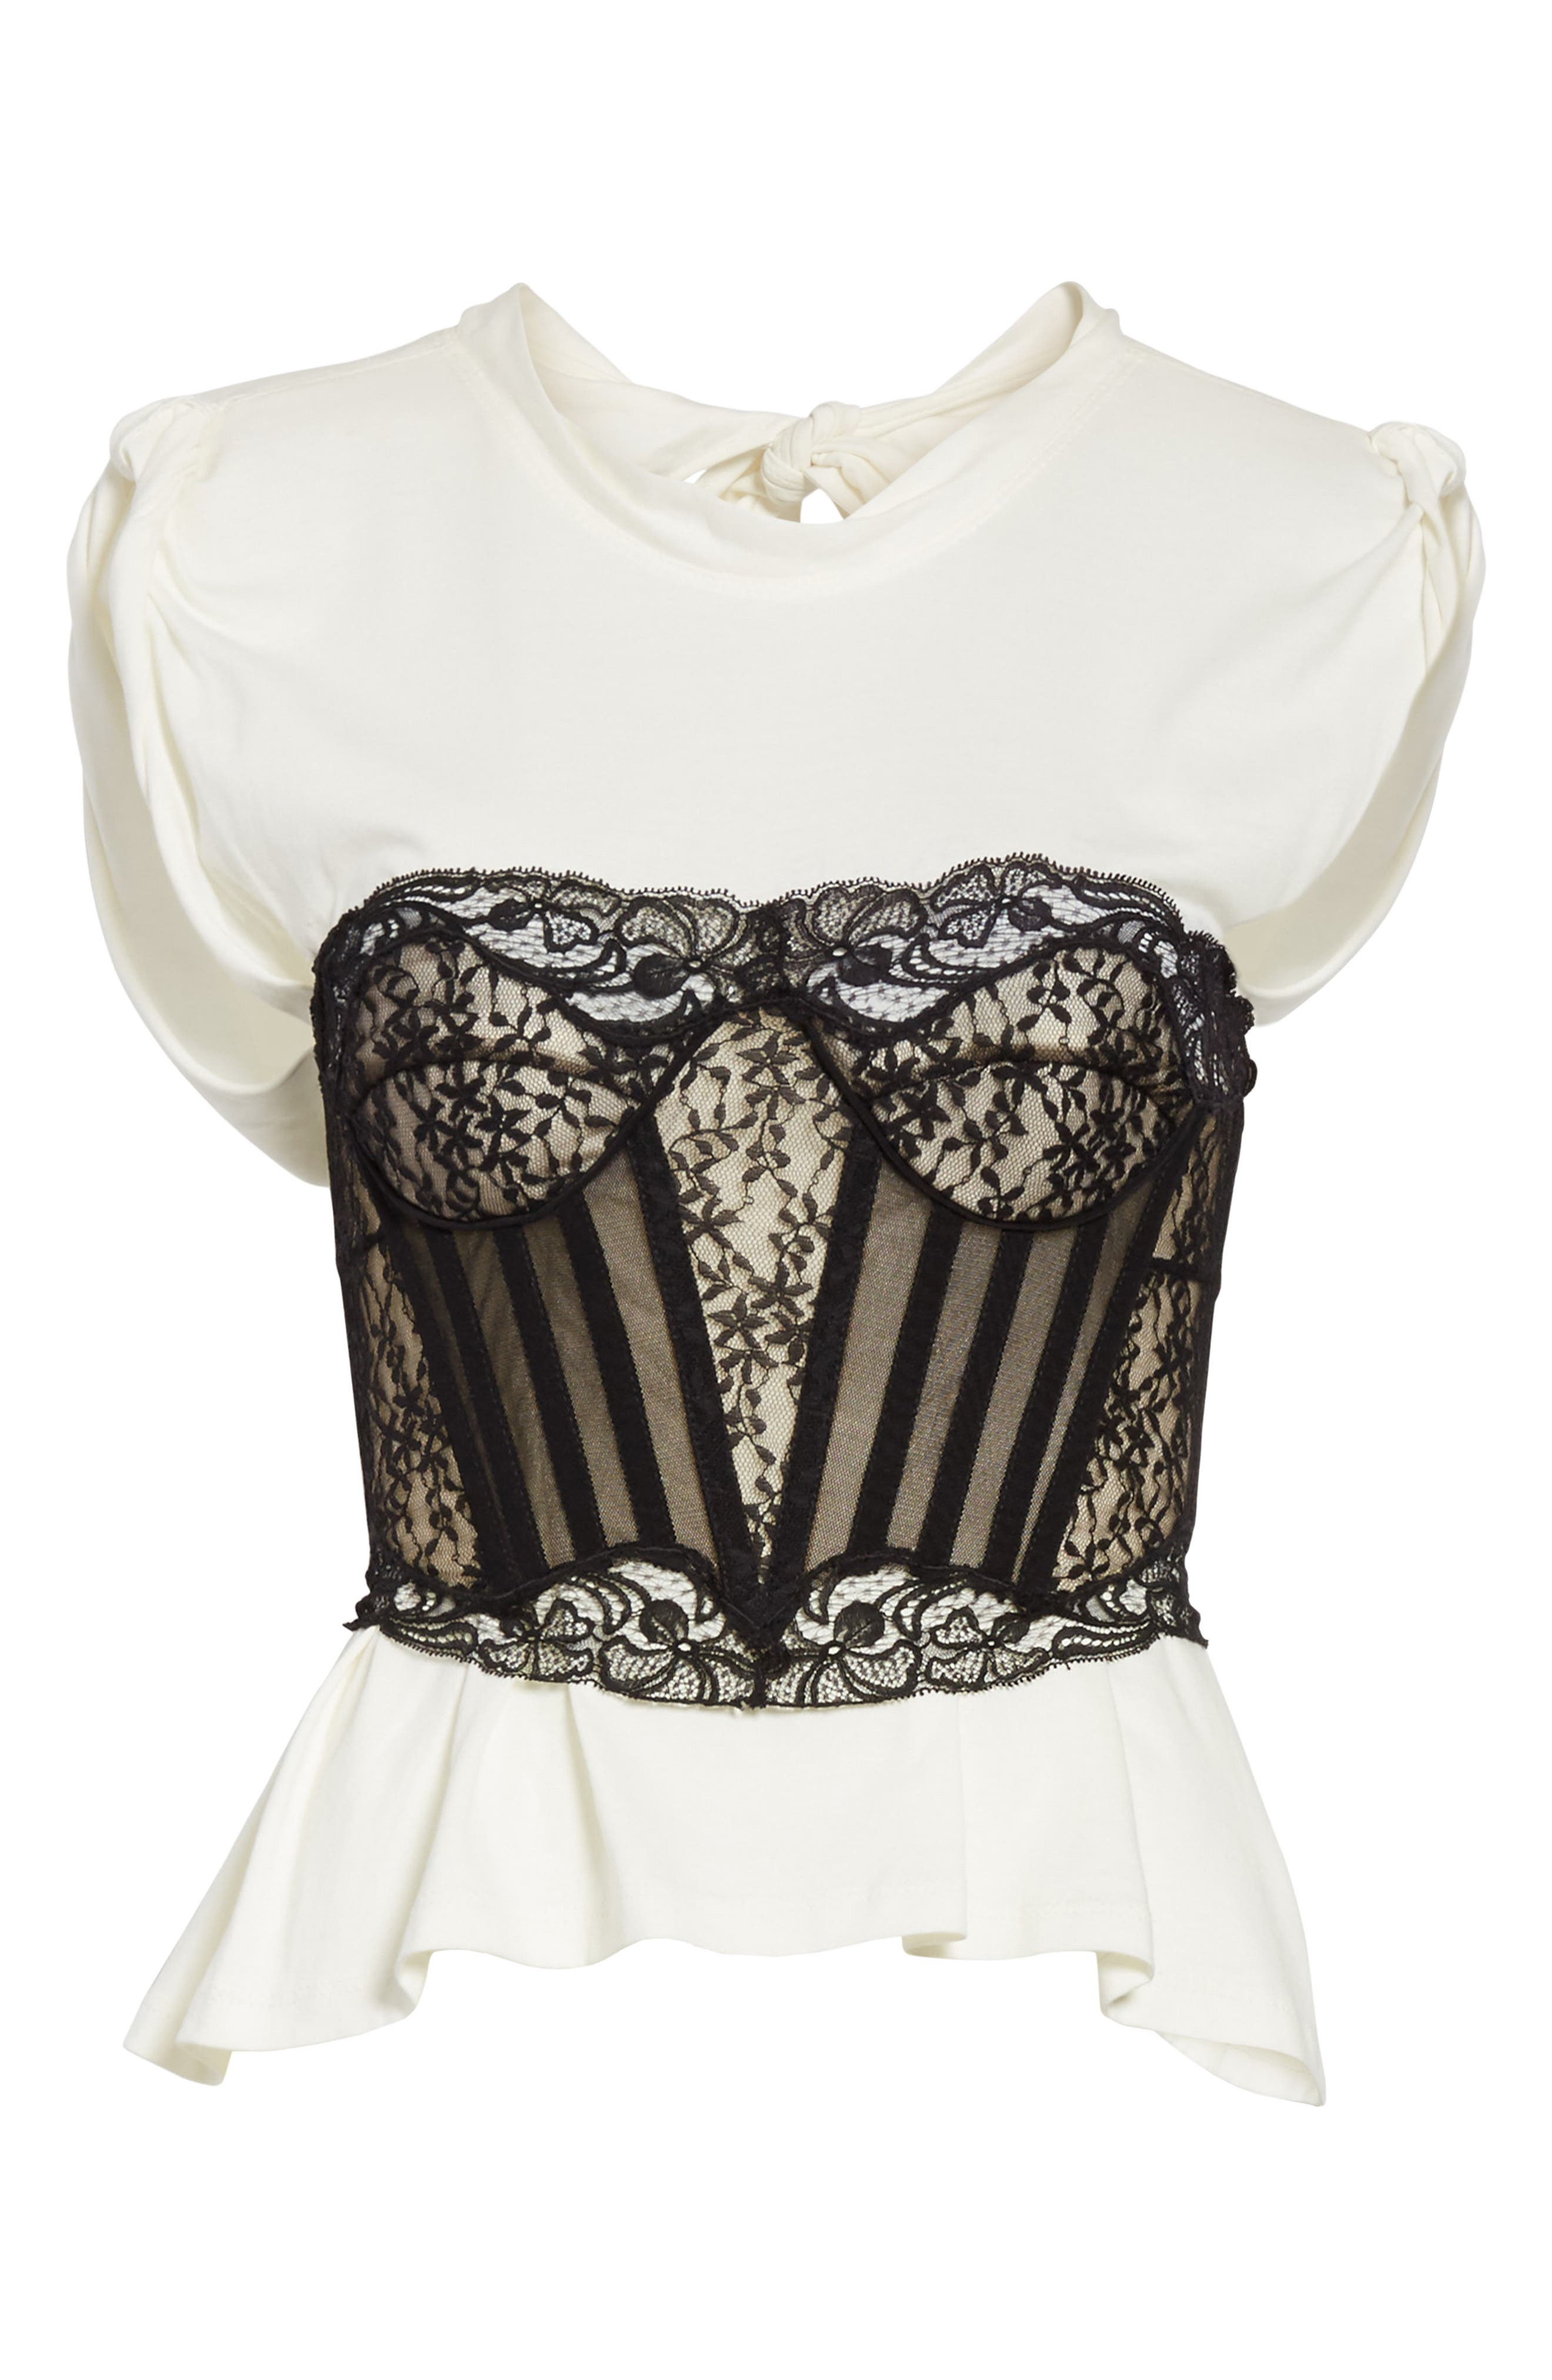 Cotton Top with Lace Bustier,                             Alternate thumbnail 6, color,                             Ivory